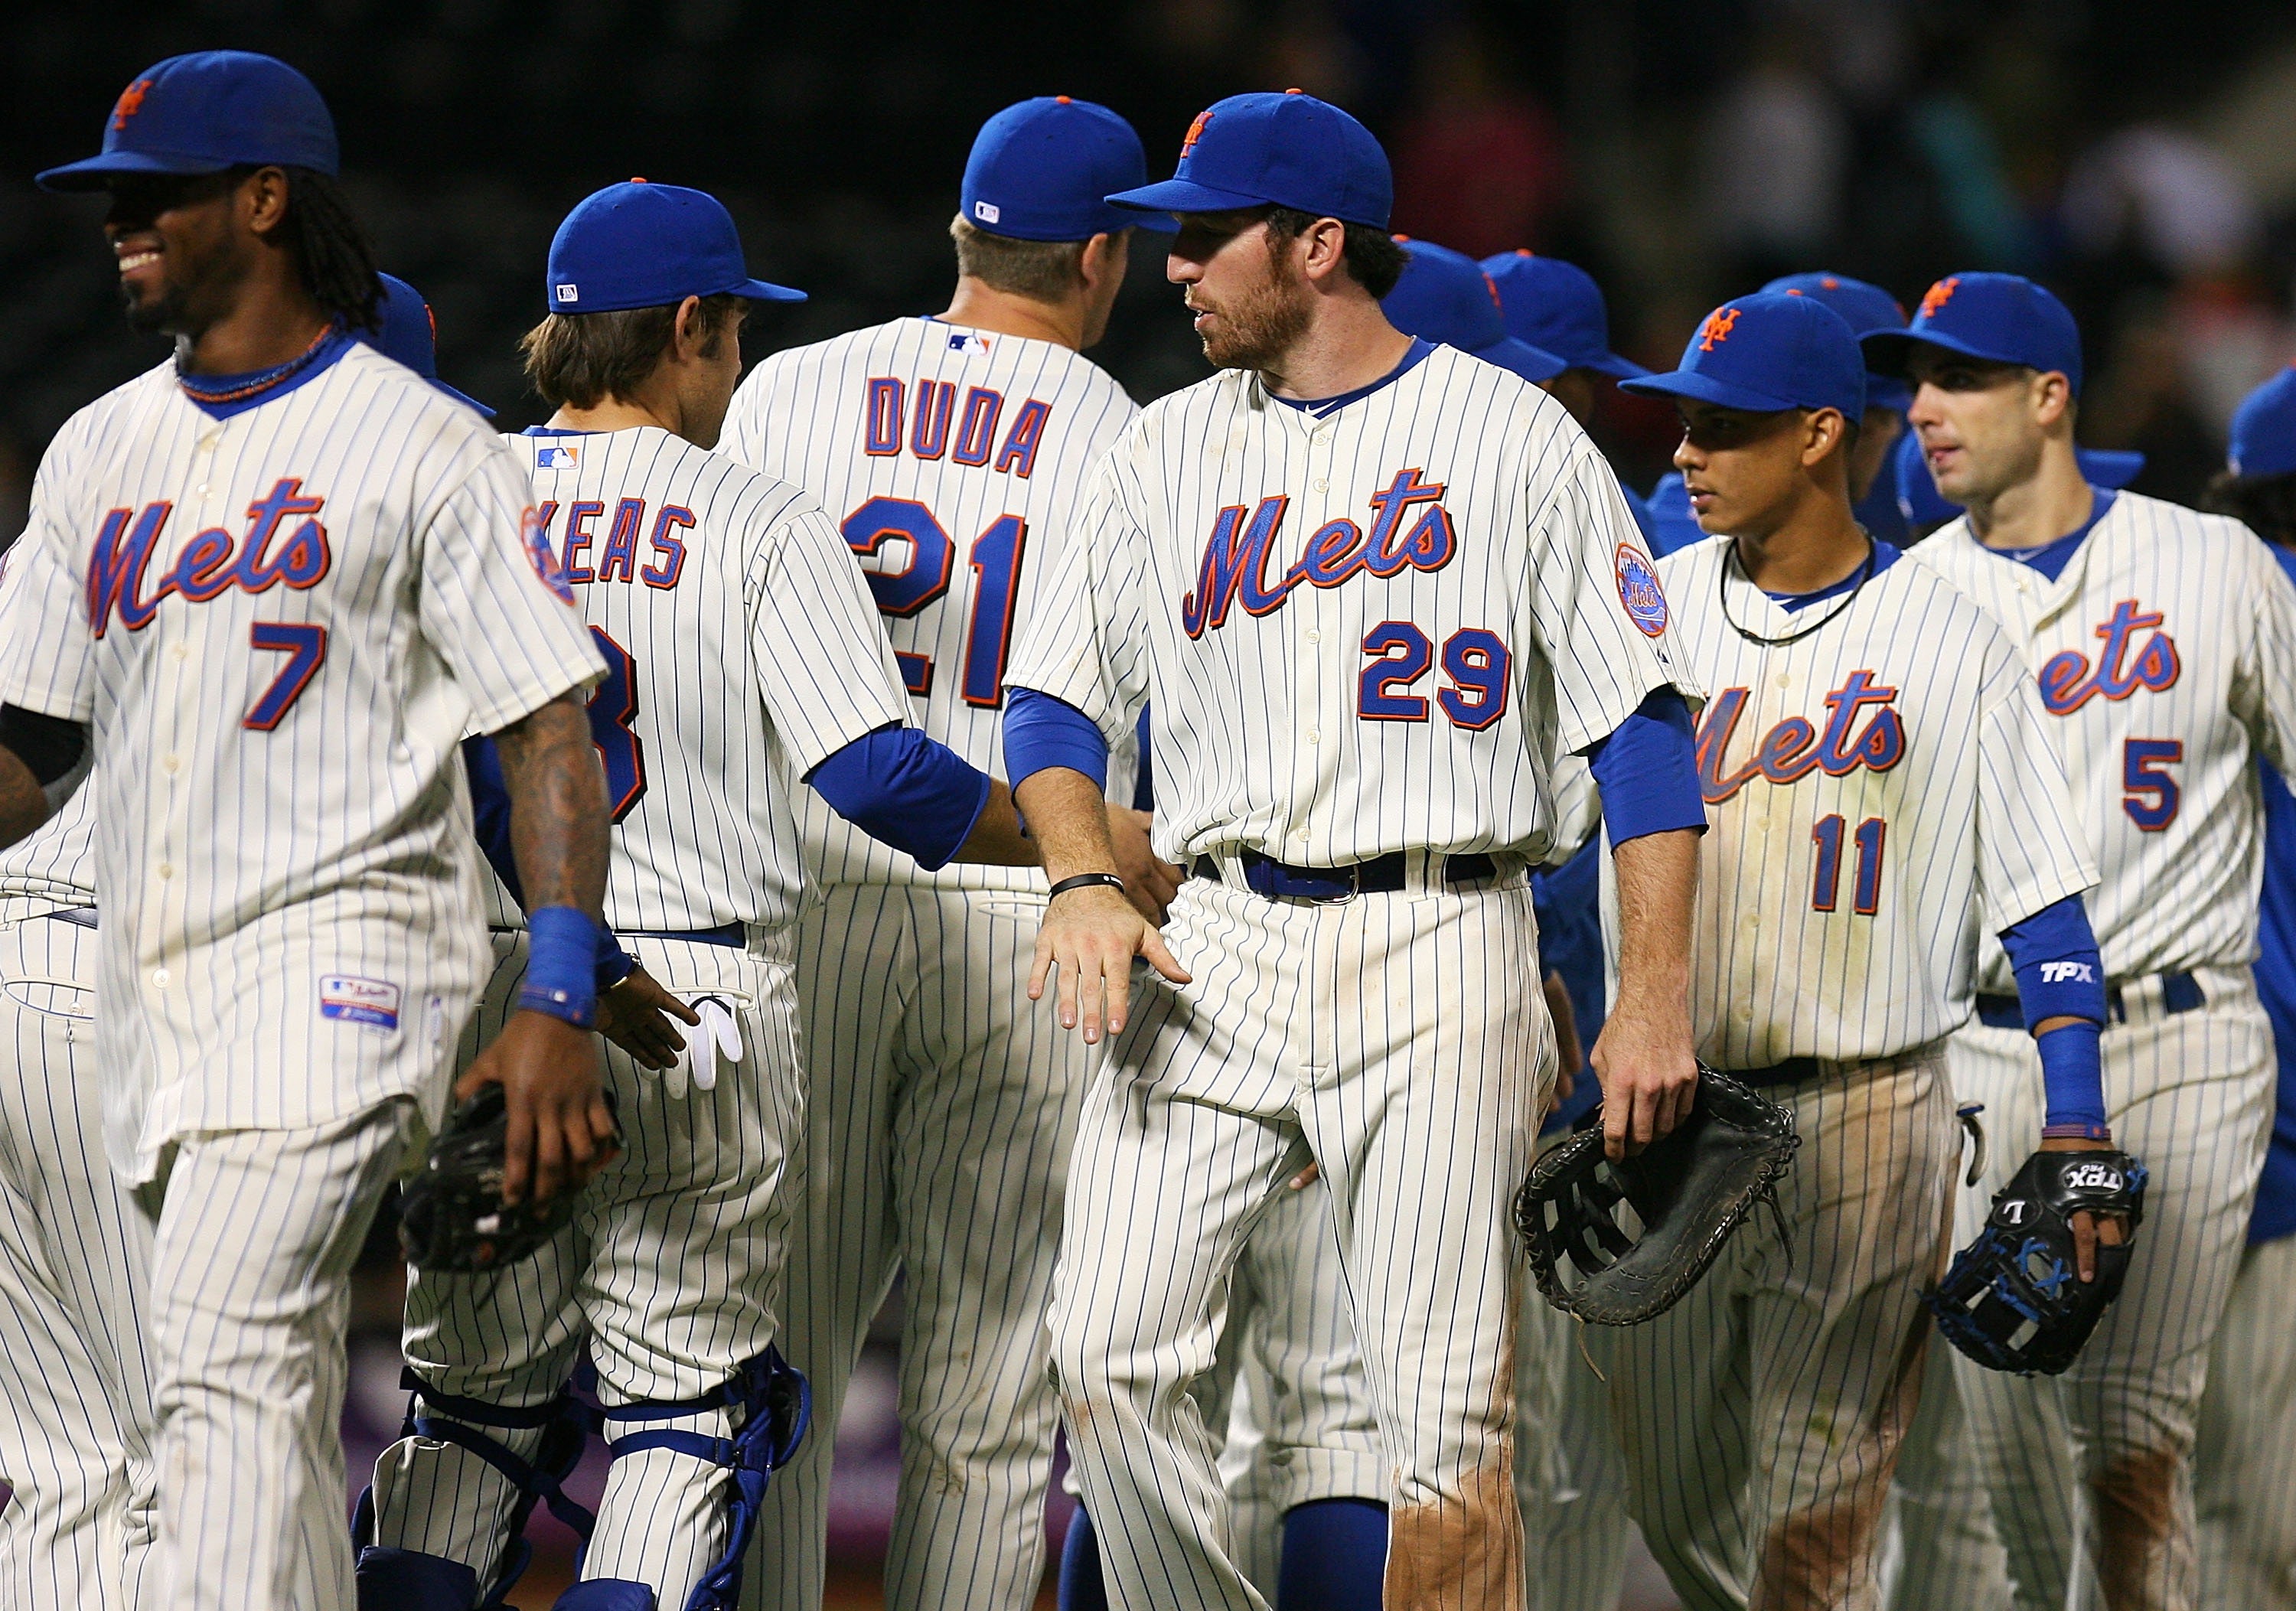 Despite a tight budget, the Mets should field a competitive and talented team in 2011.